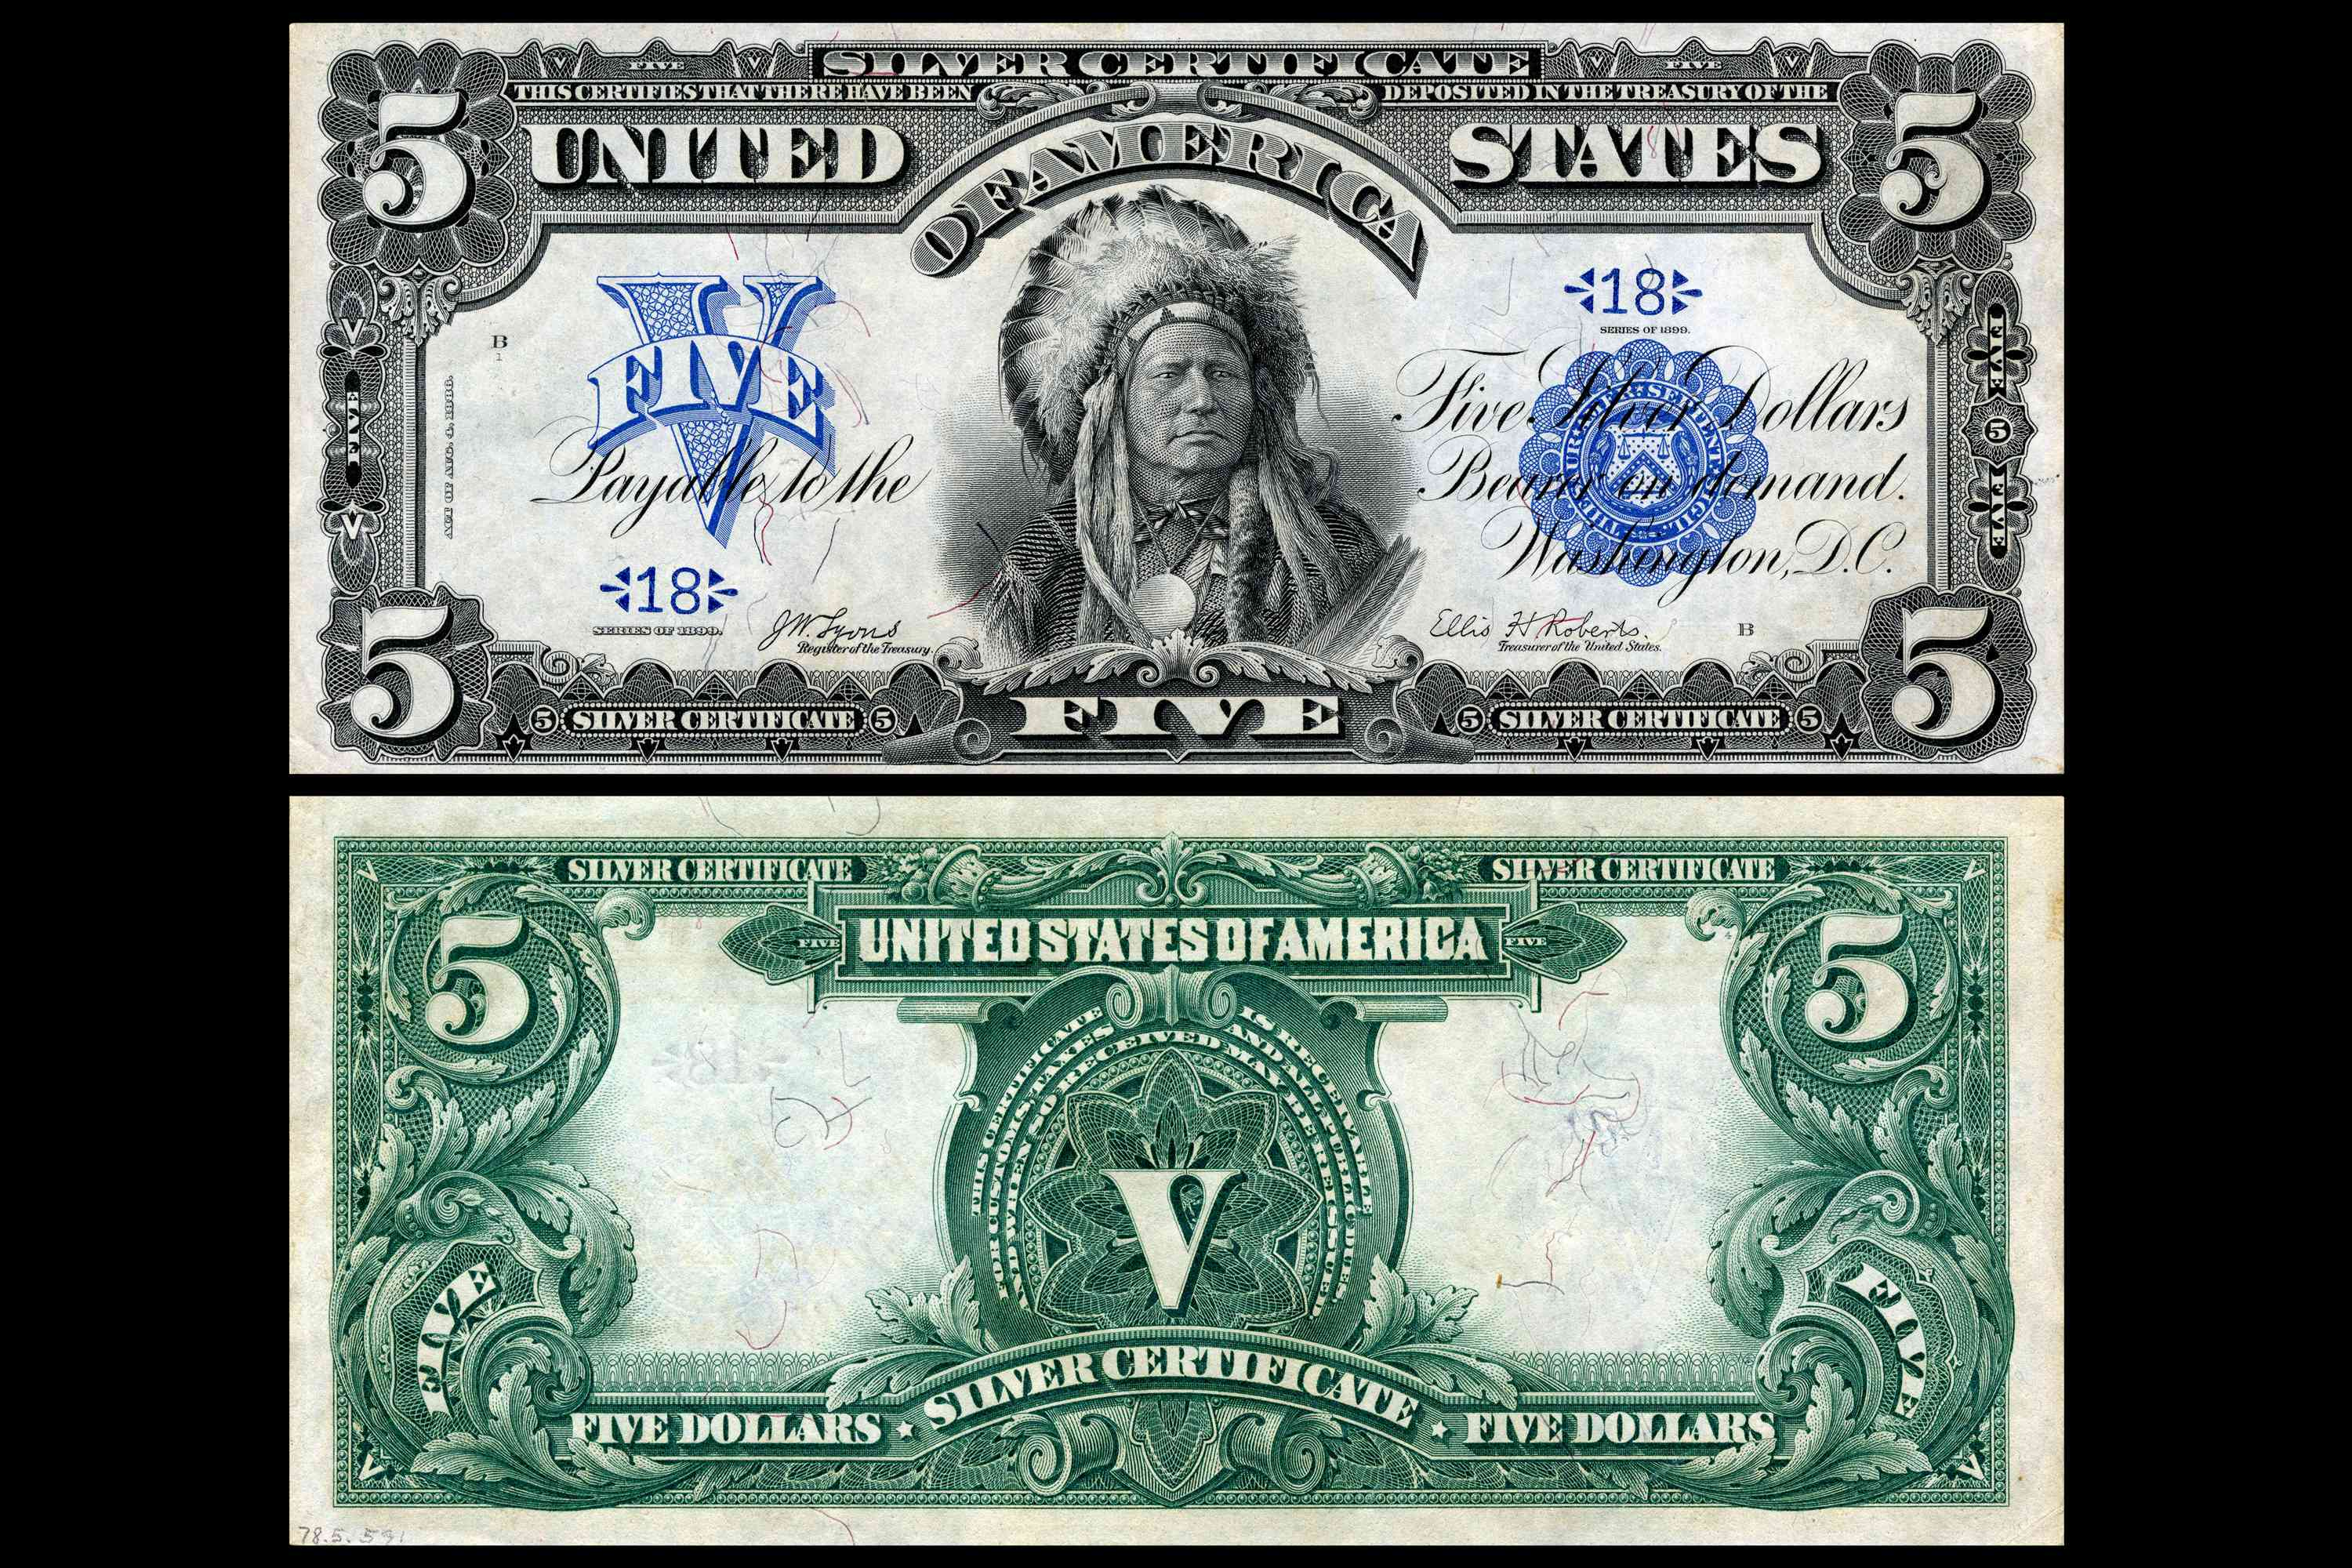 1899 Indian Chief $5 Silver Certificate